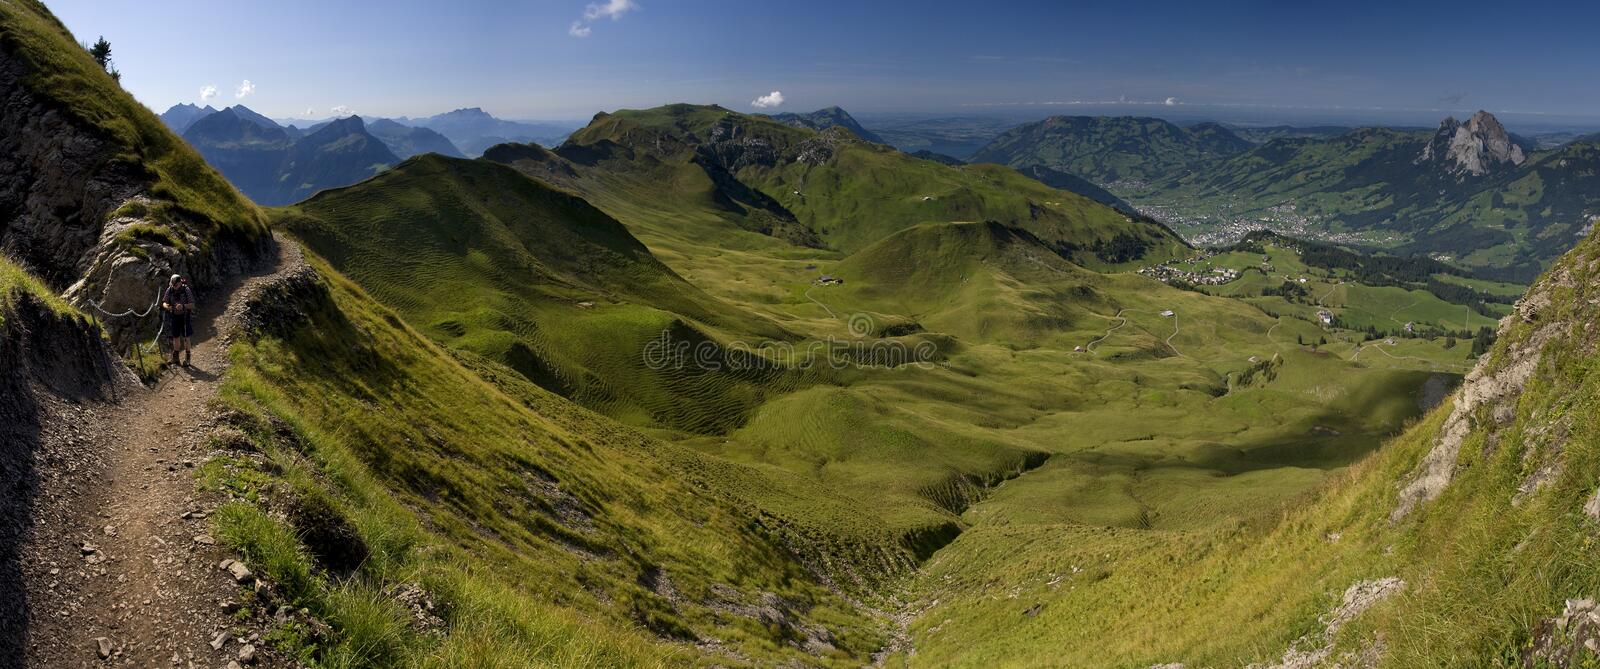 Green valley in Switzerland royalty free stock photo